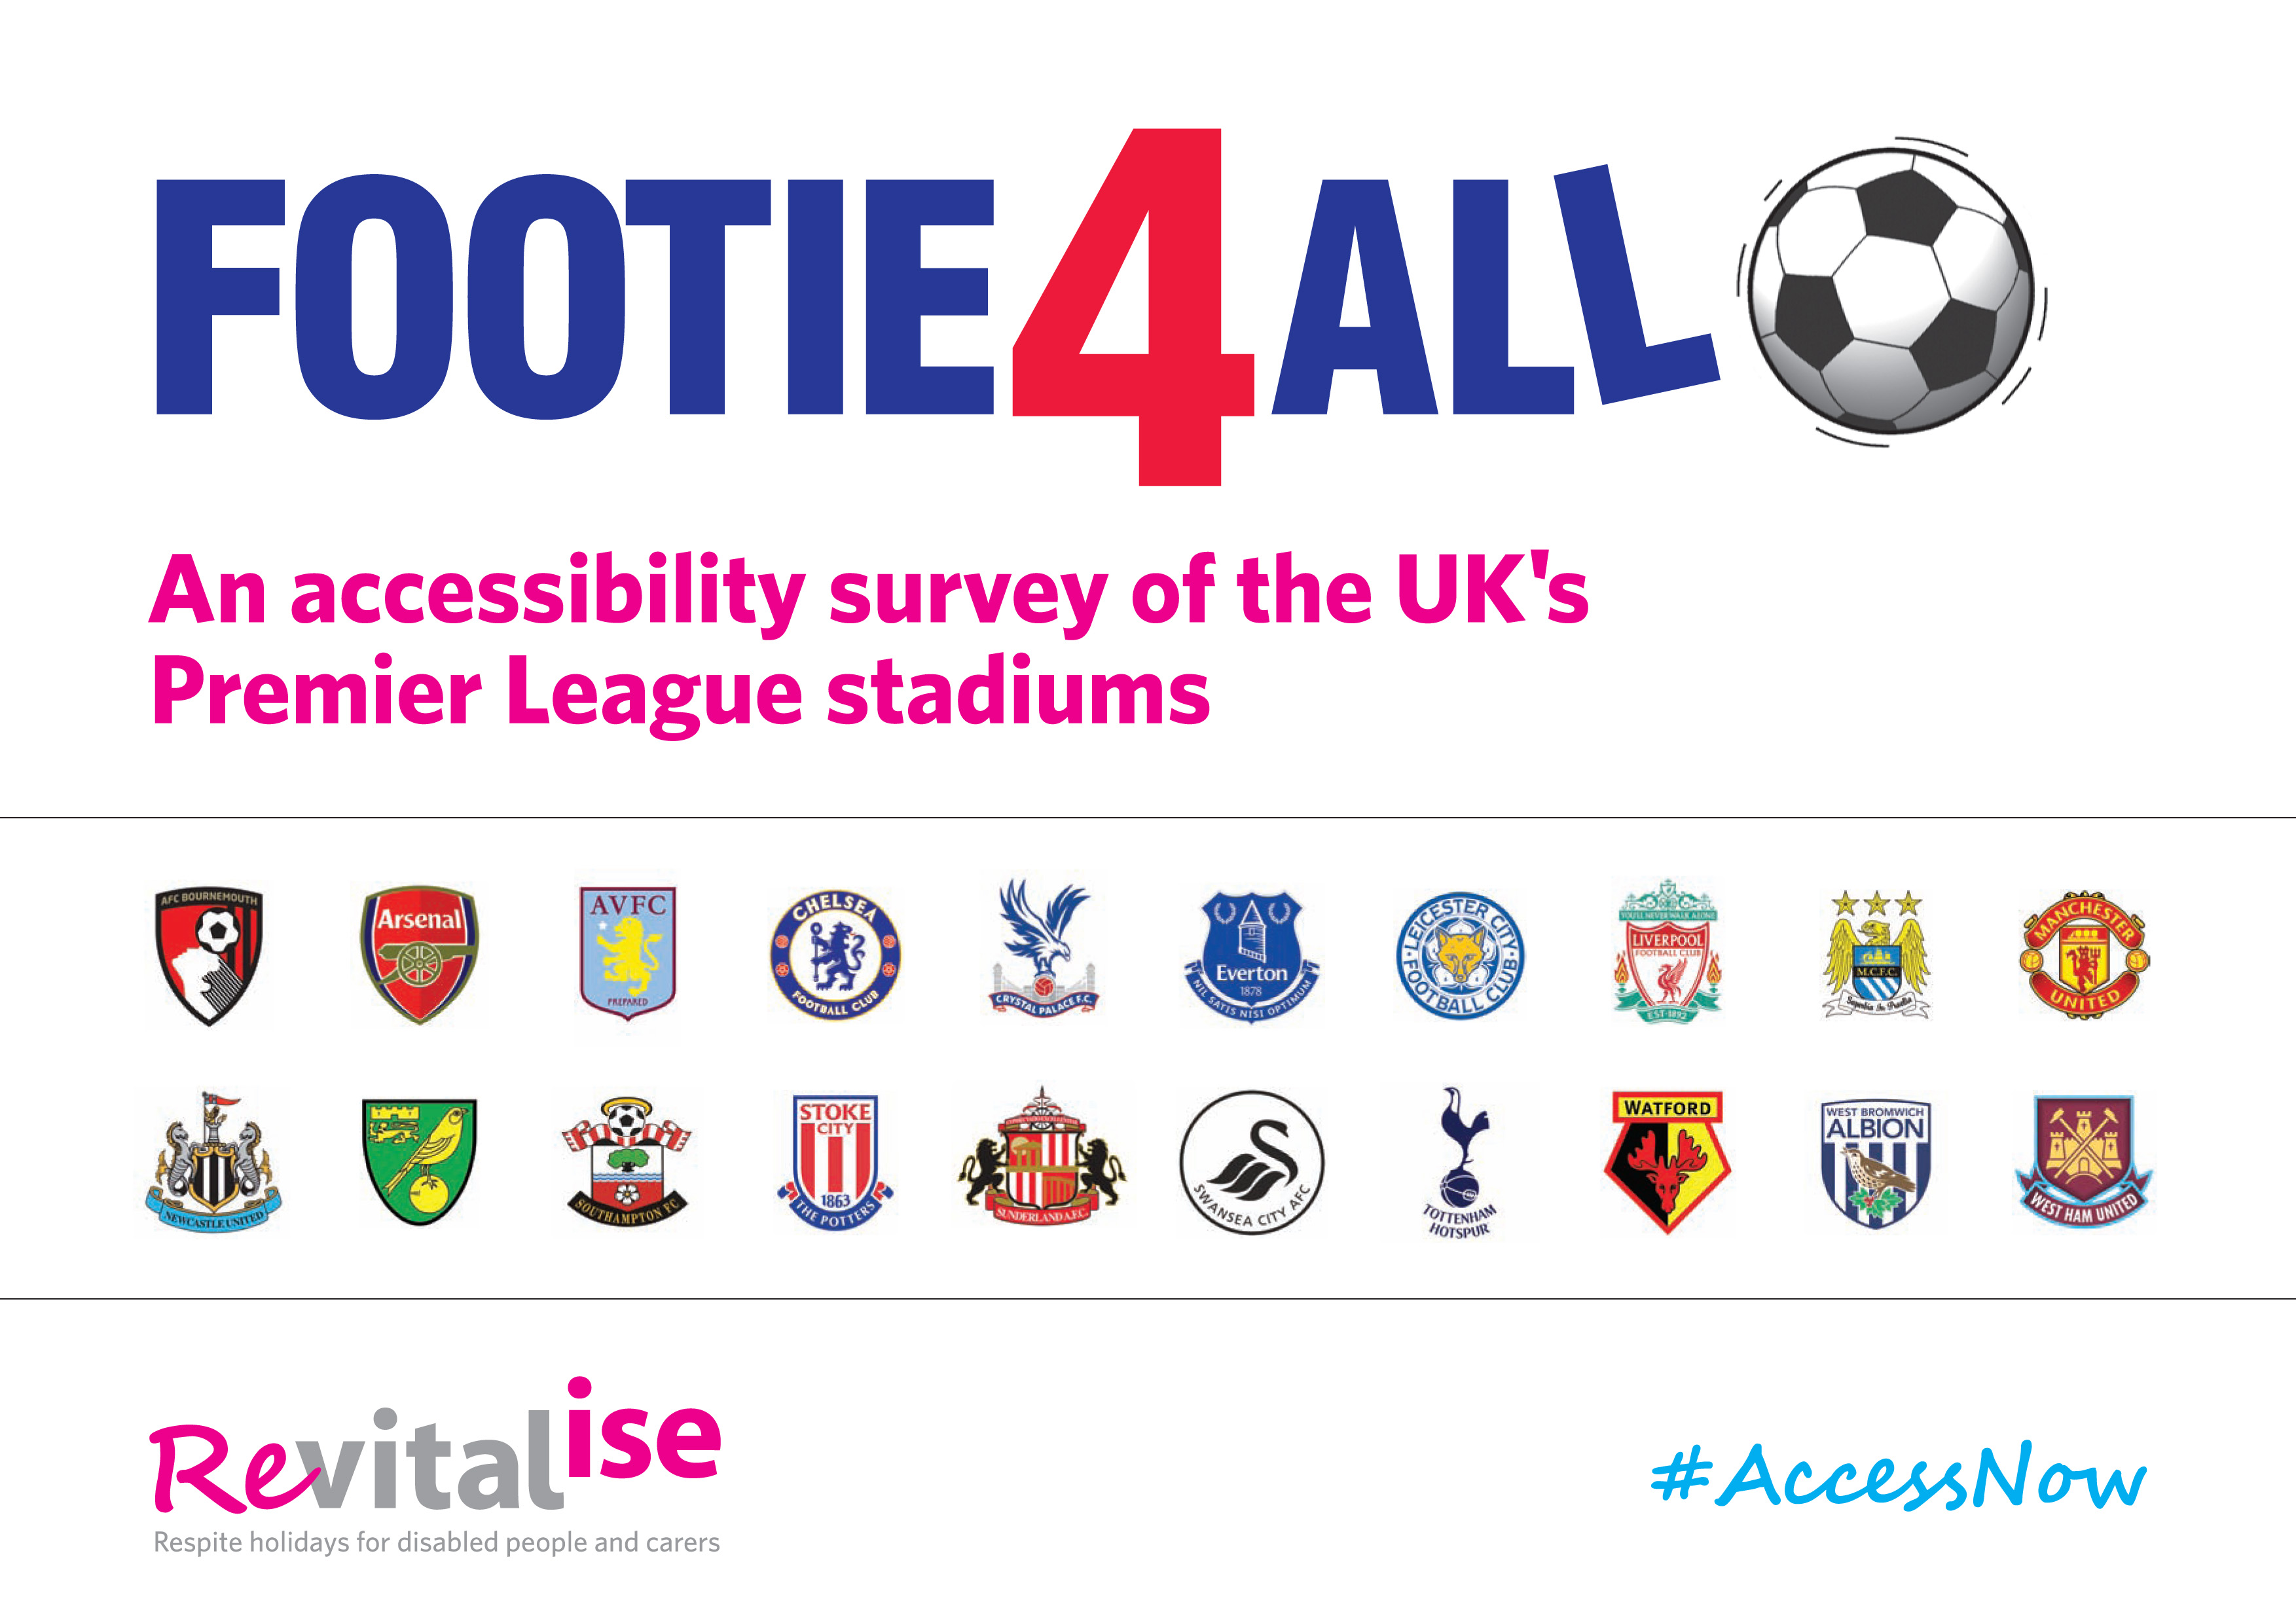 Top football clubs failing disabled supporters